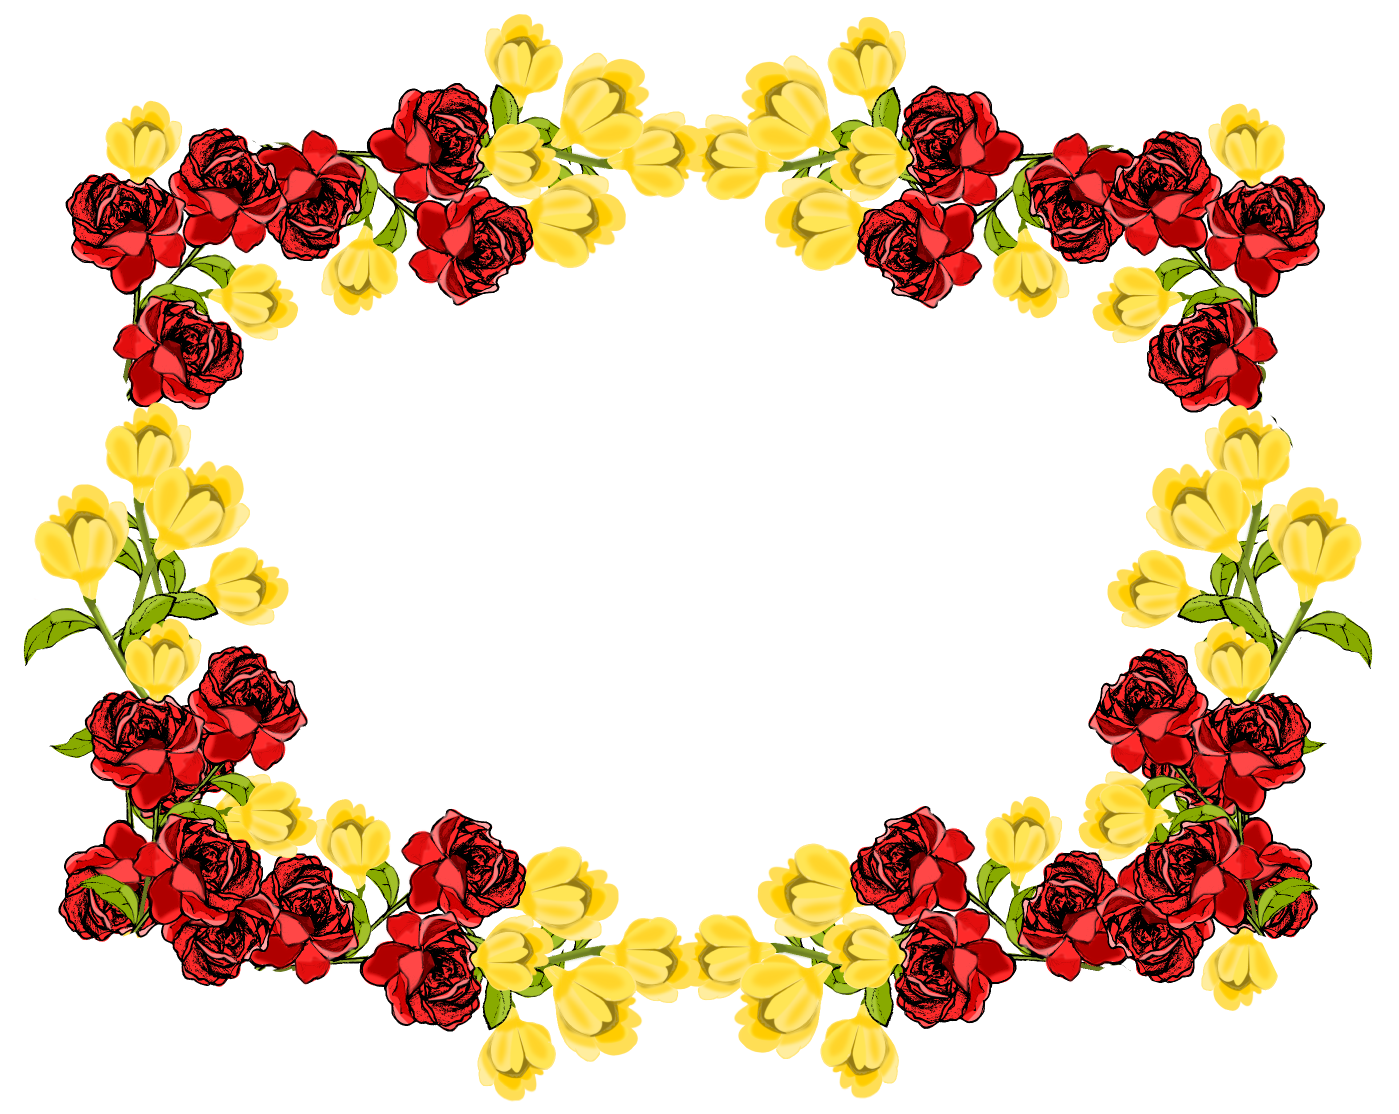 Red And Yellow Flower Frame Png - 5611 - TransparentPNG